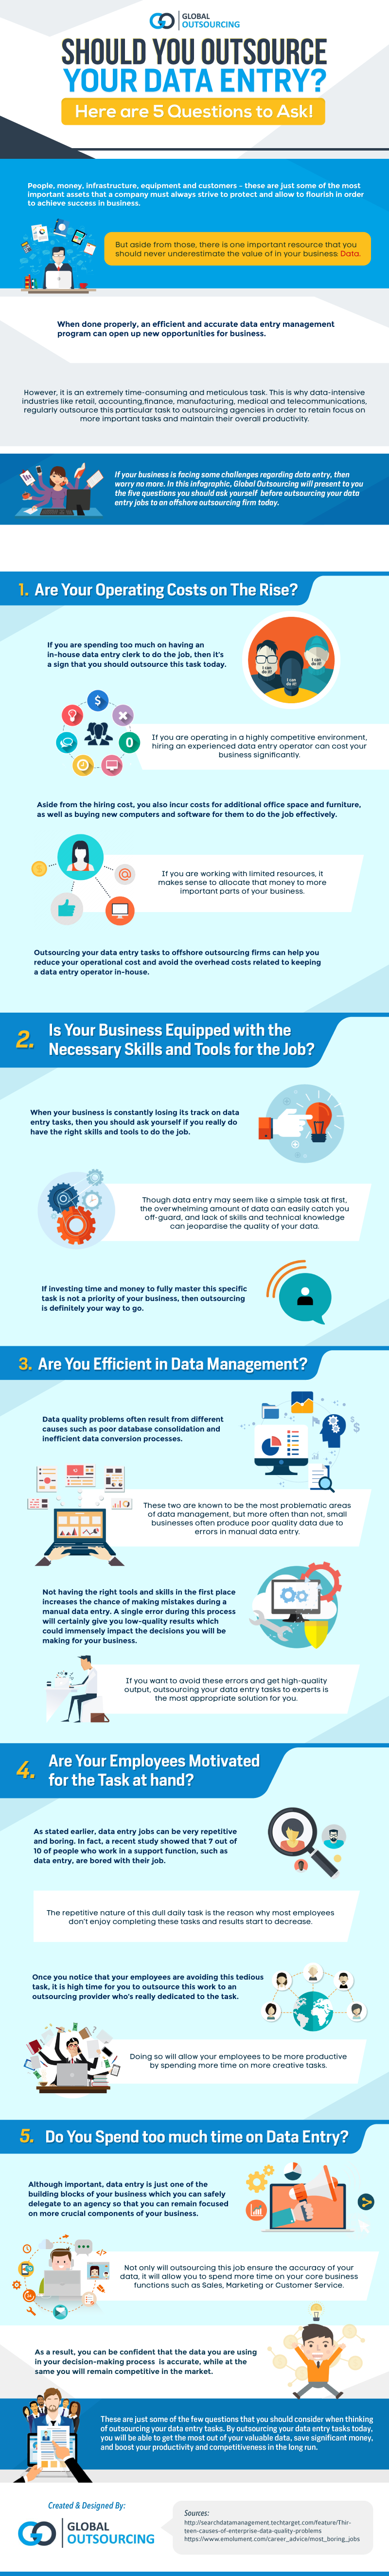 Are You Confused About Whether You Should Outsource Your Data Entry? - Infographic